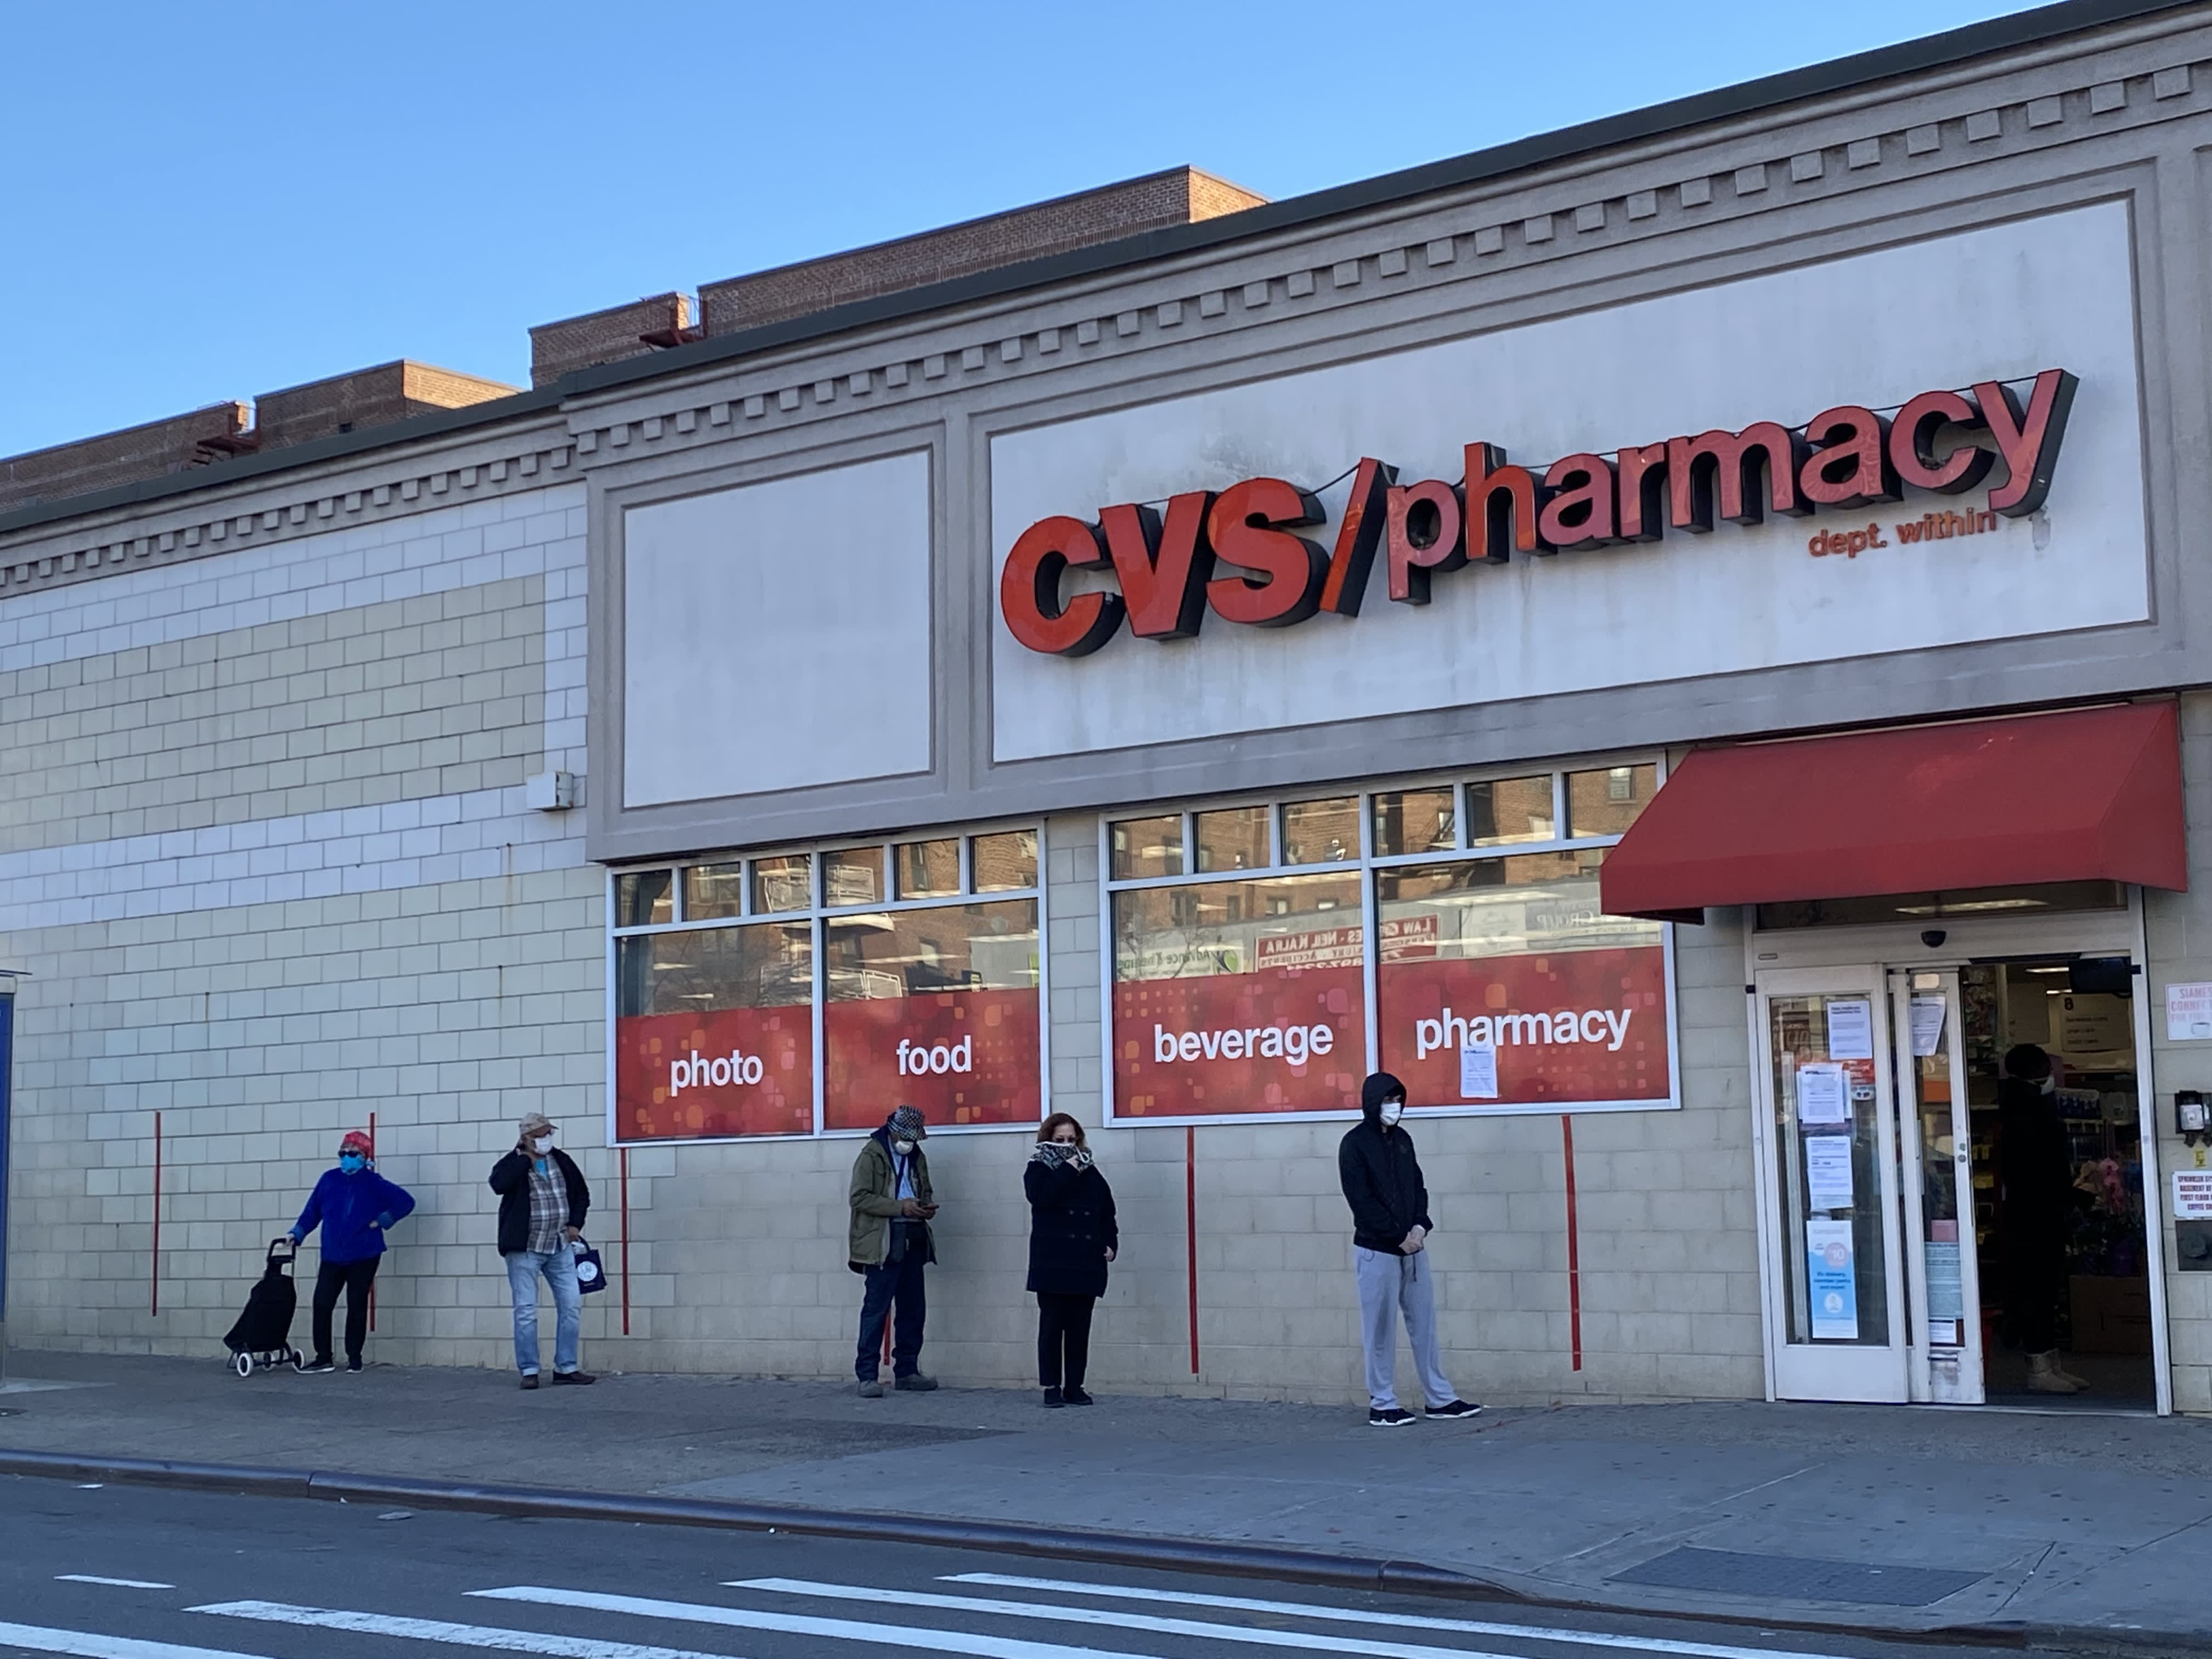 Coronavirus Cvs Sees Big Business Opportunities With Covid 19 Tests Flu Shots